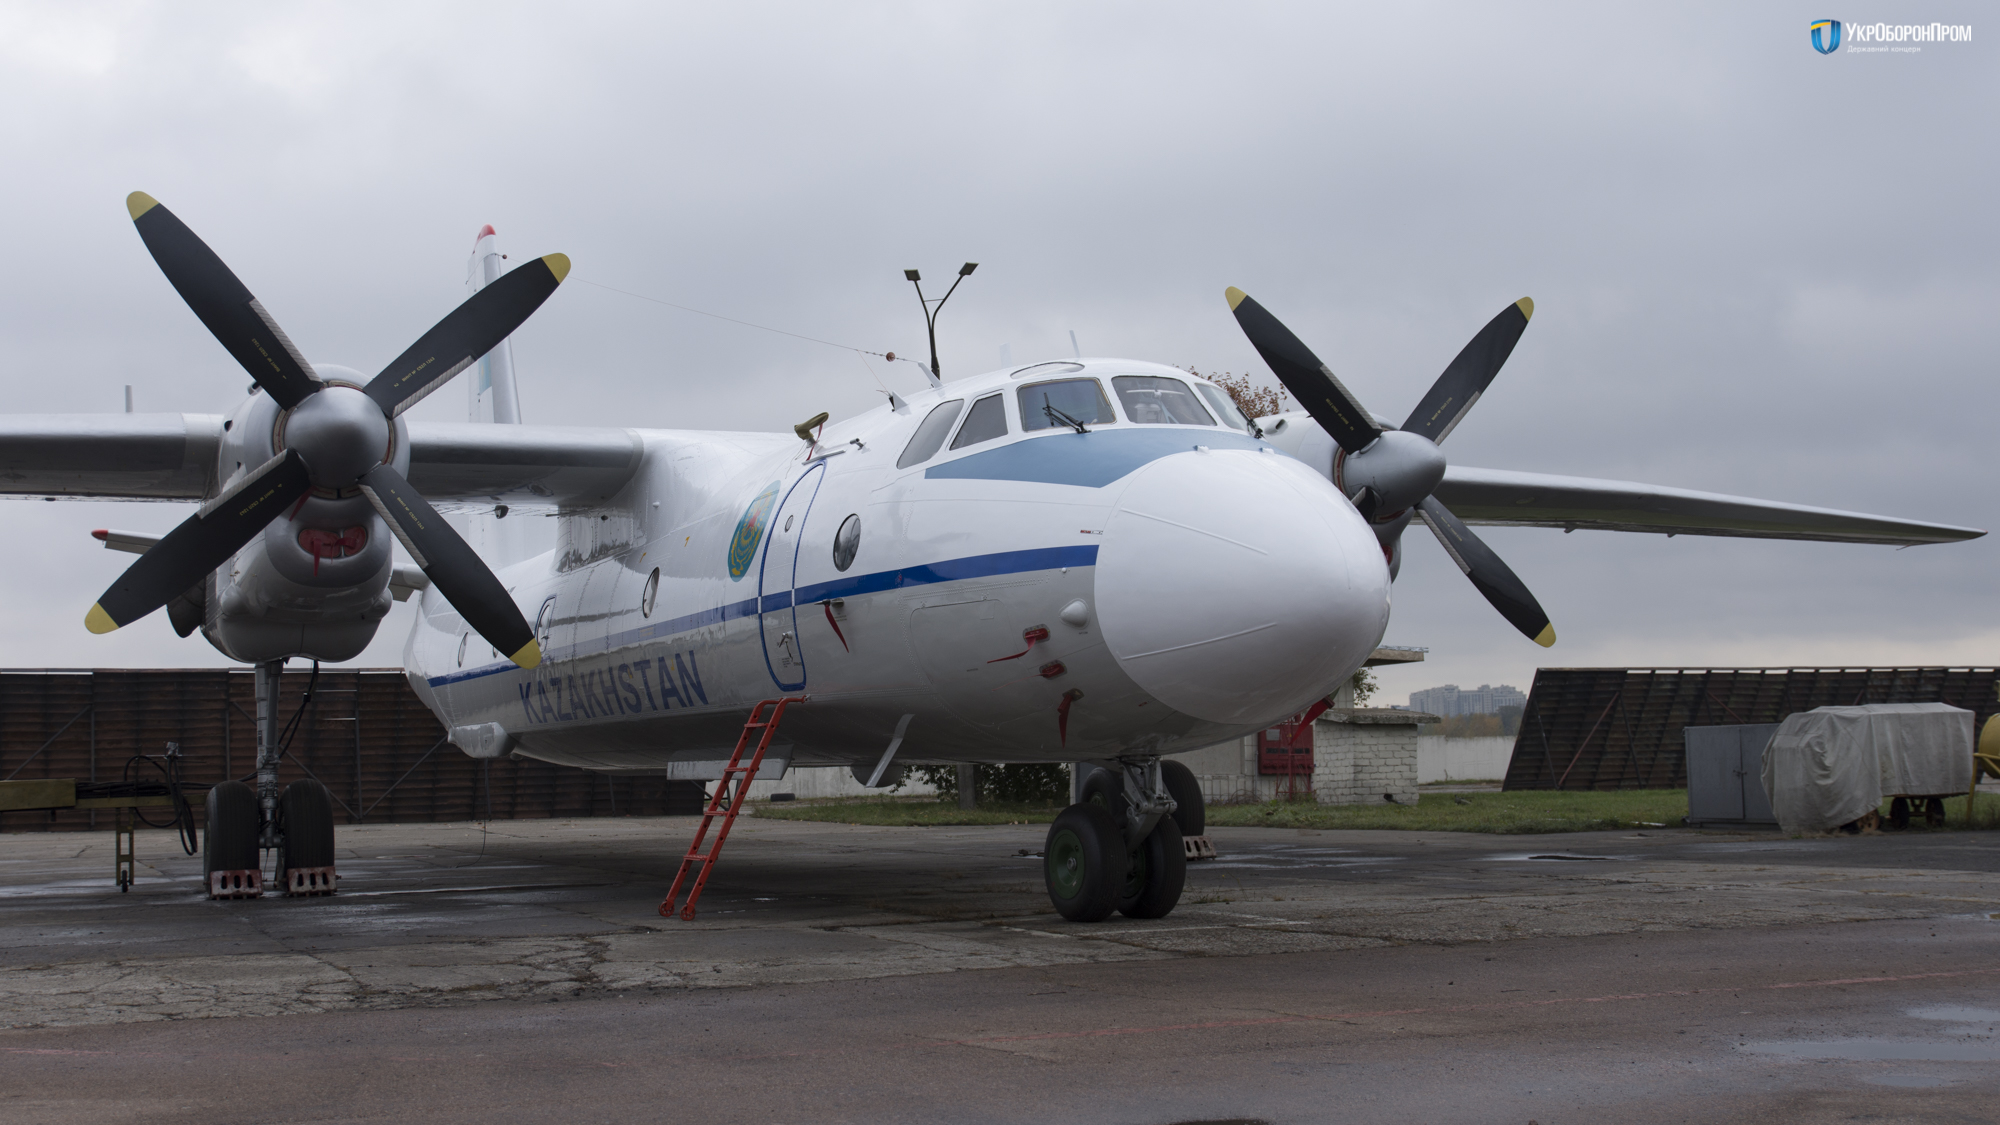 Ukraine hands over refurbished AN-26 to the National Guard of the Republic of Kazakhstan